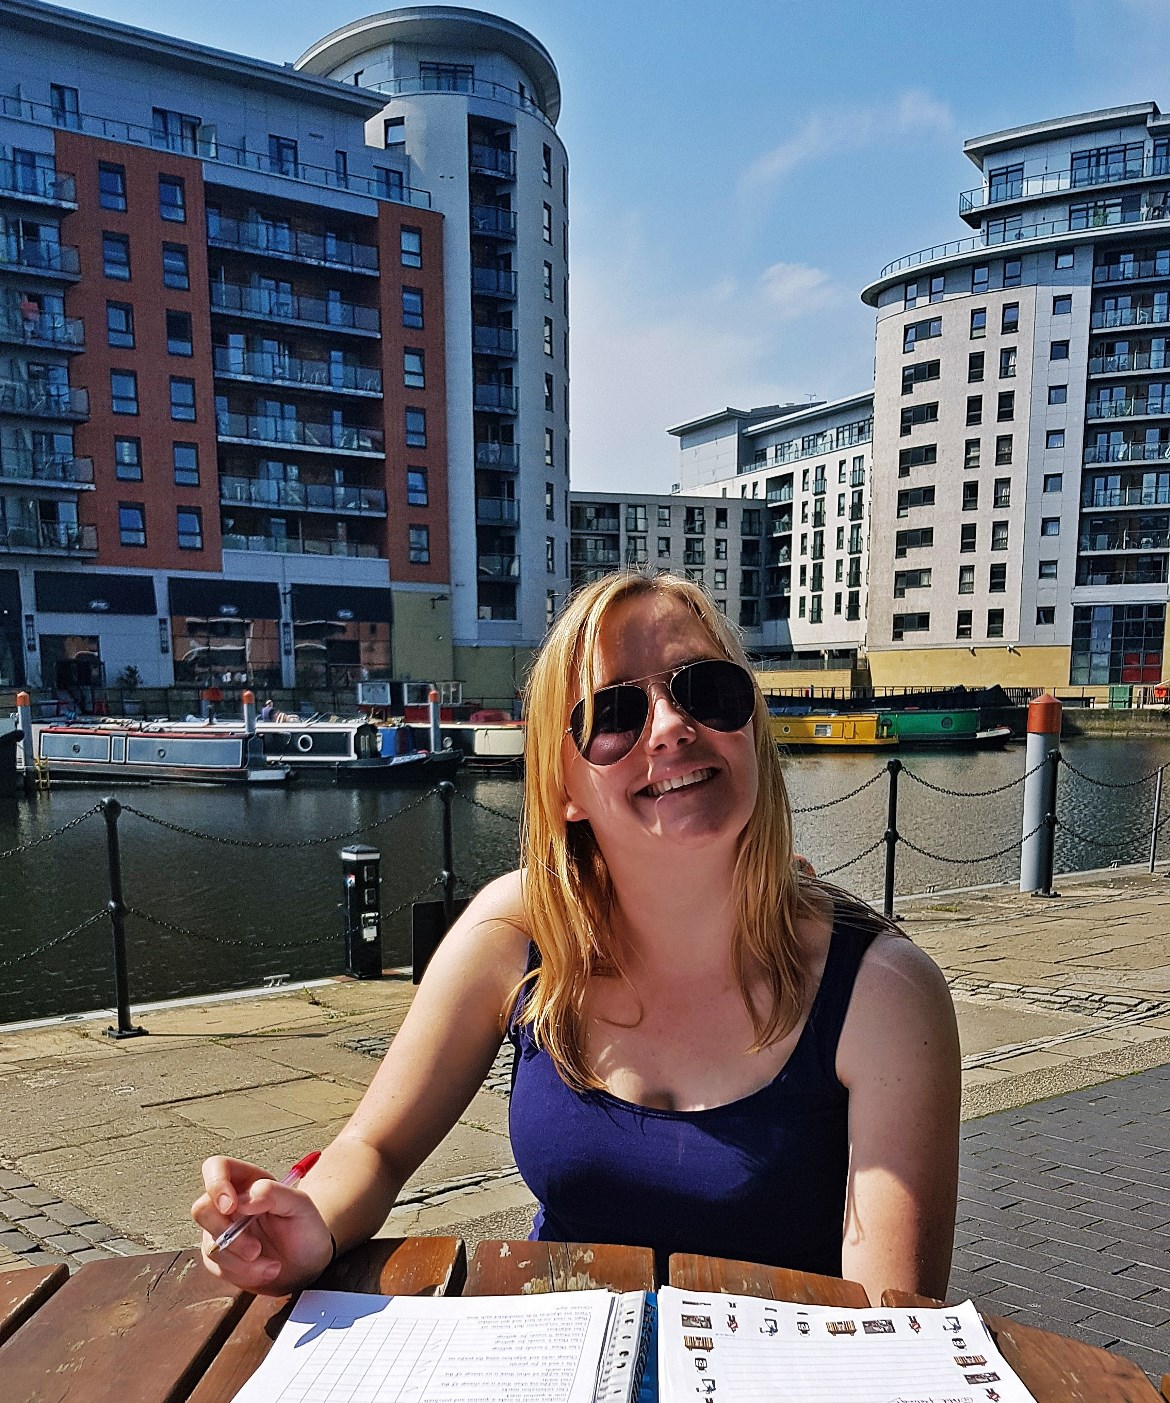 Enjoying the sun at Leeds Dock - May 2018 Monthly Recap by BeckyBecky Blogs